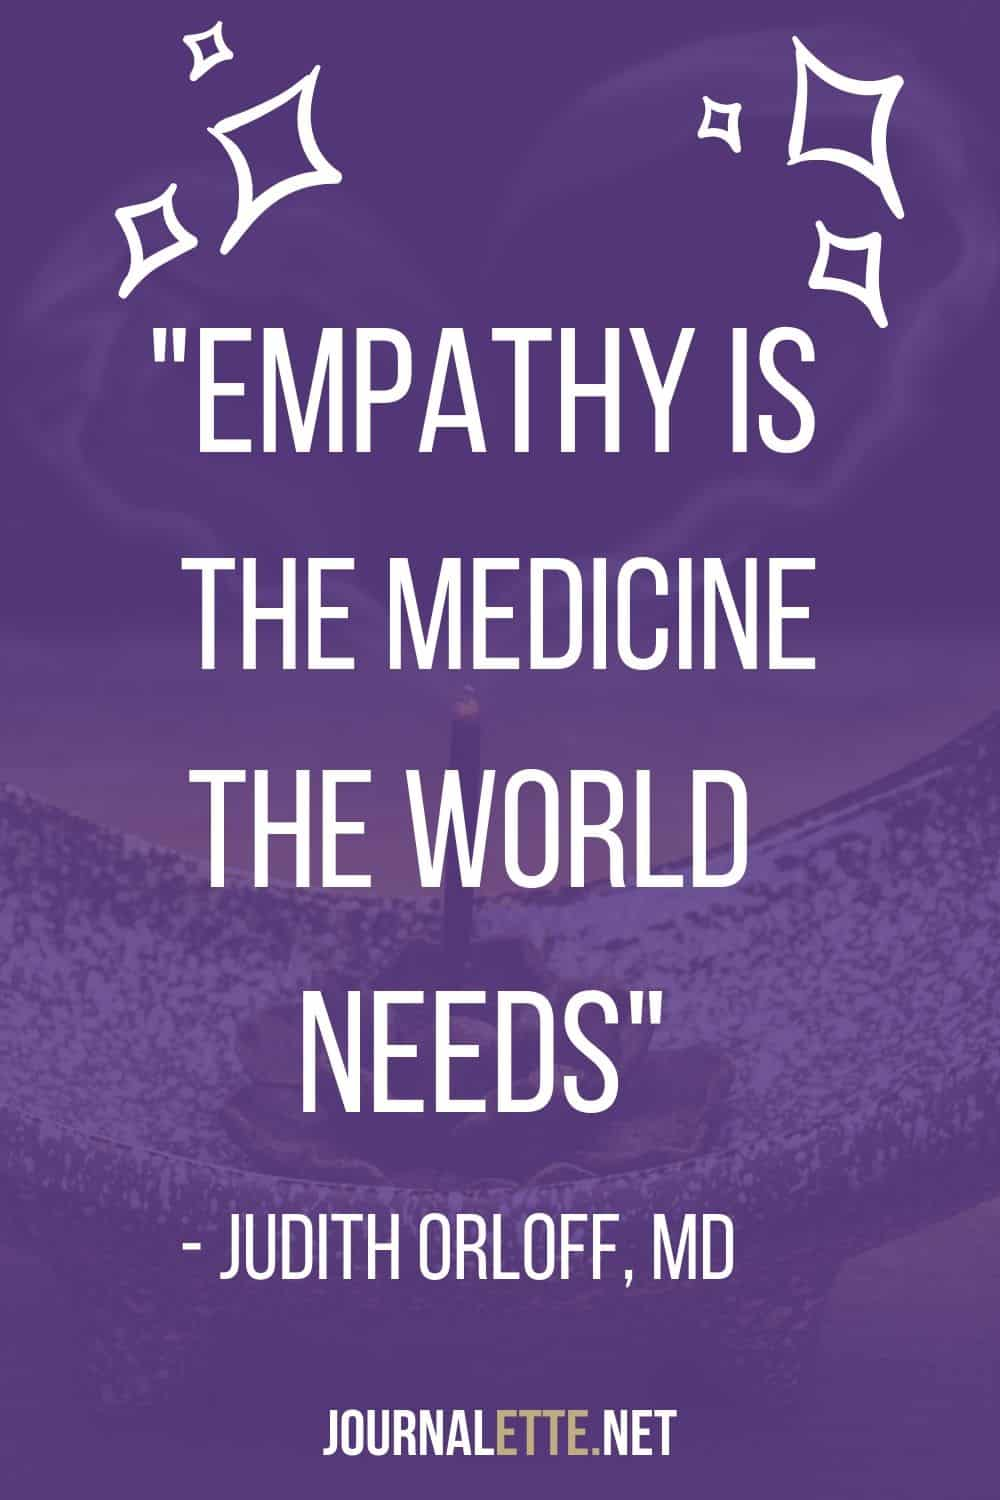 quote about empathy by dr judith orloff